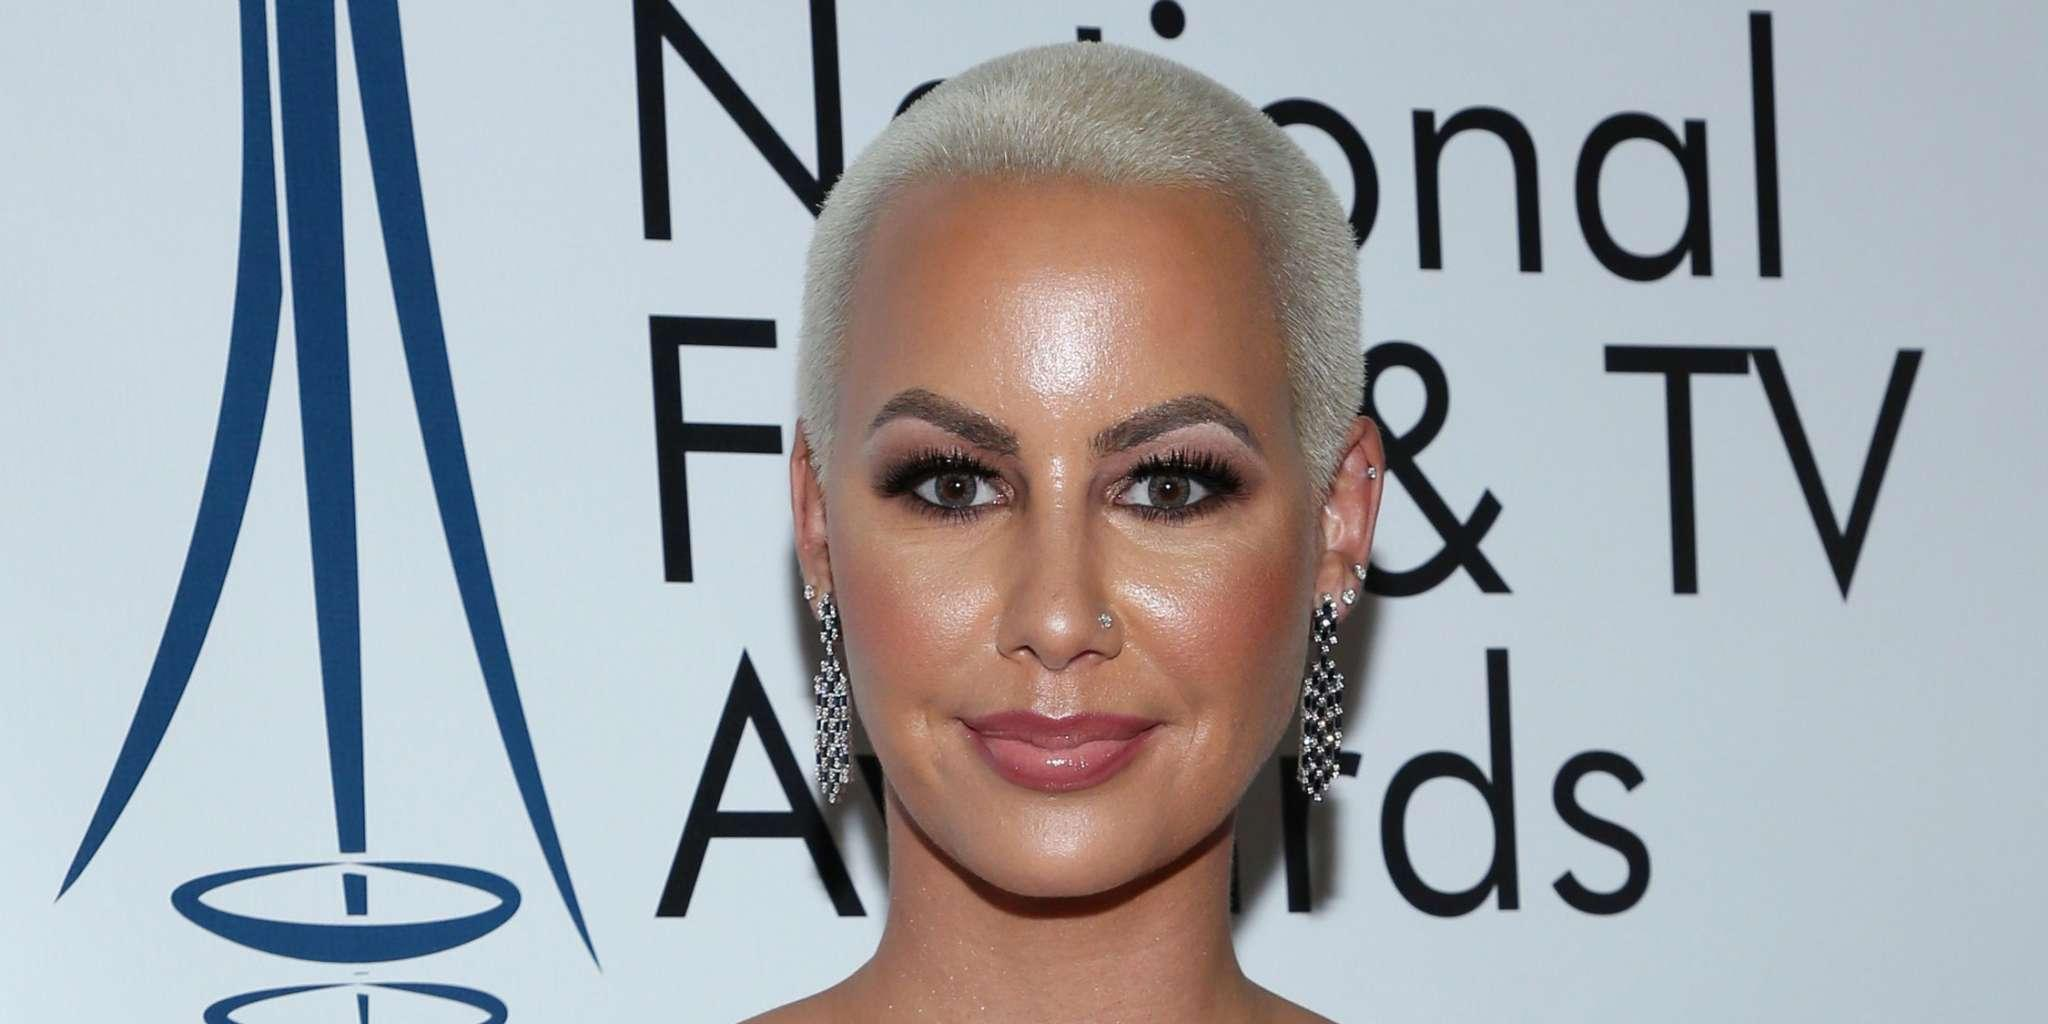 Amber Rose Drops A Message For T.I.; Says She Stands With The LGBTQ Community